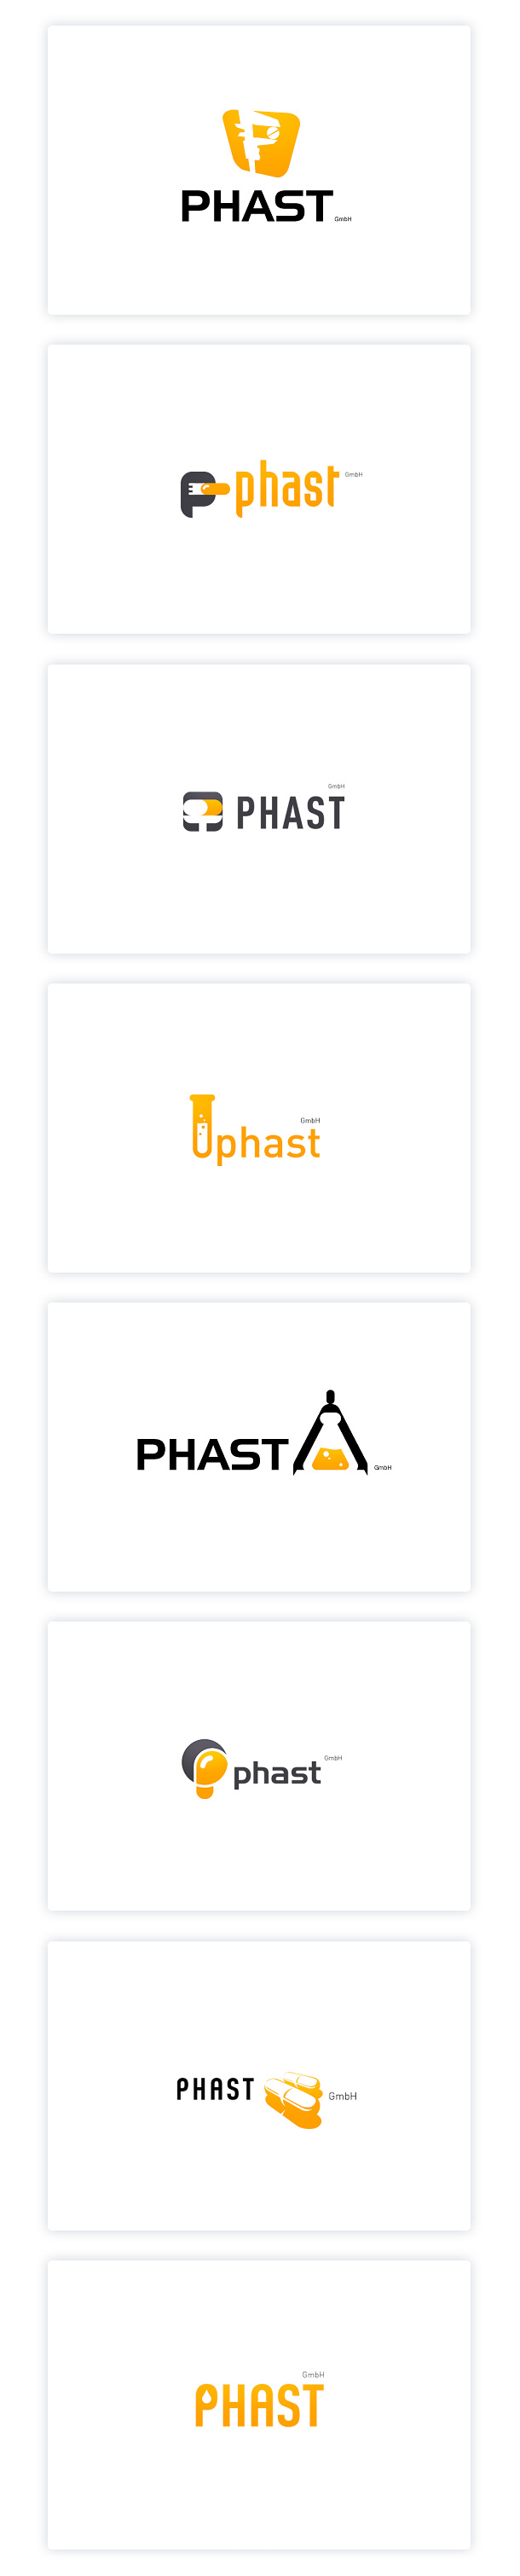 PHAST GmbH, logo drafts.